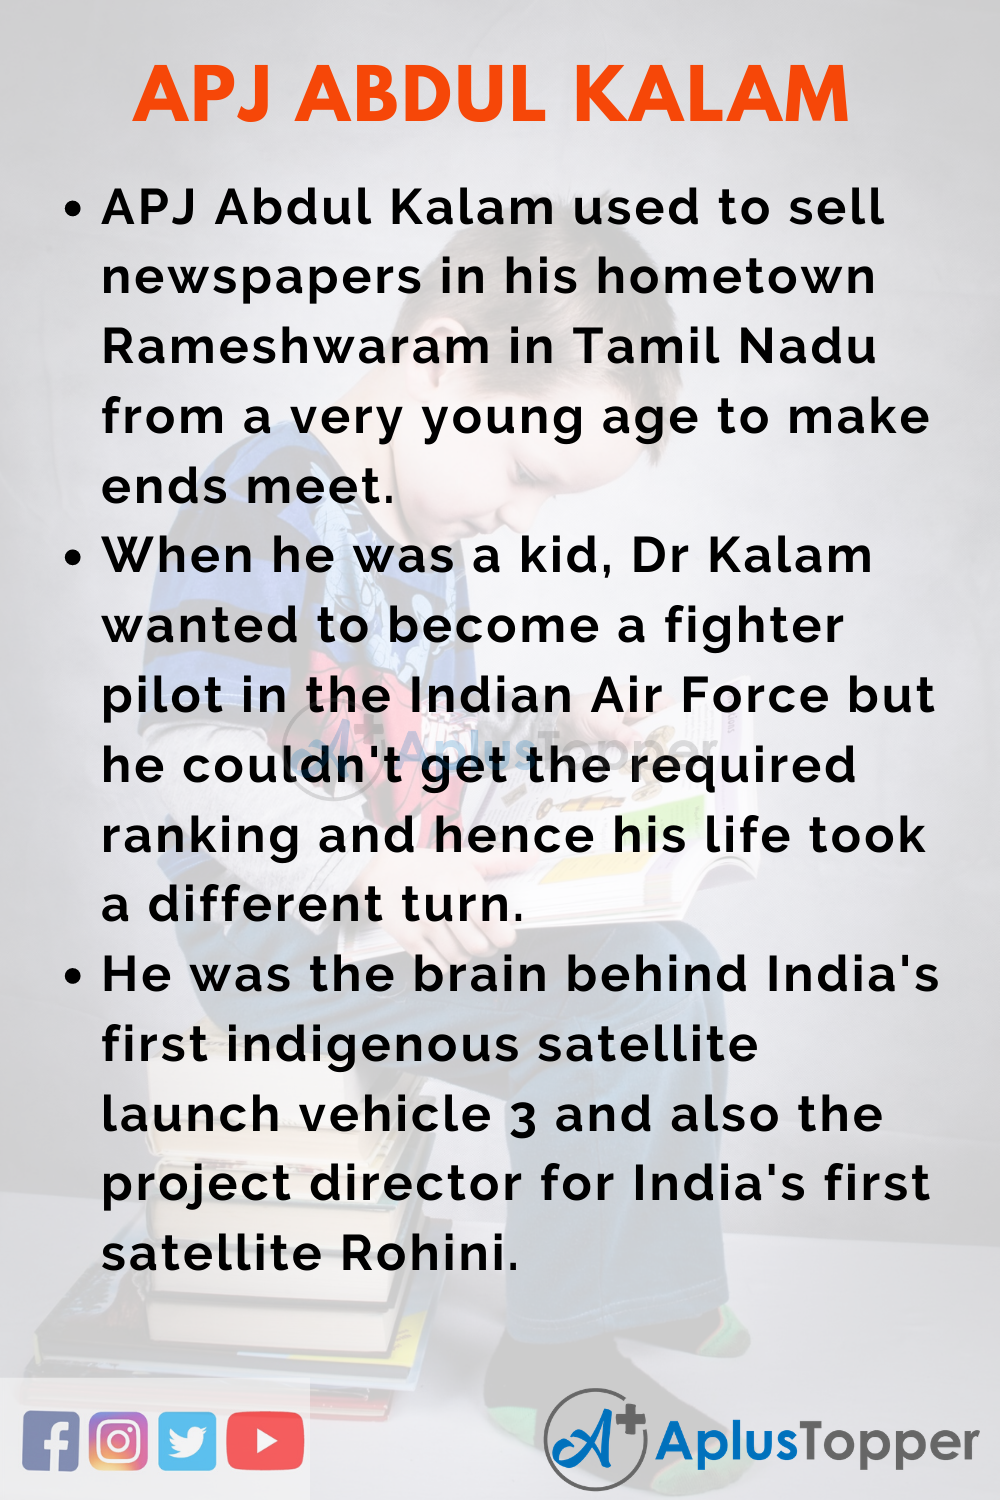 10 Lines on APJ Abdul Kalam for Higher Class Students